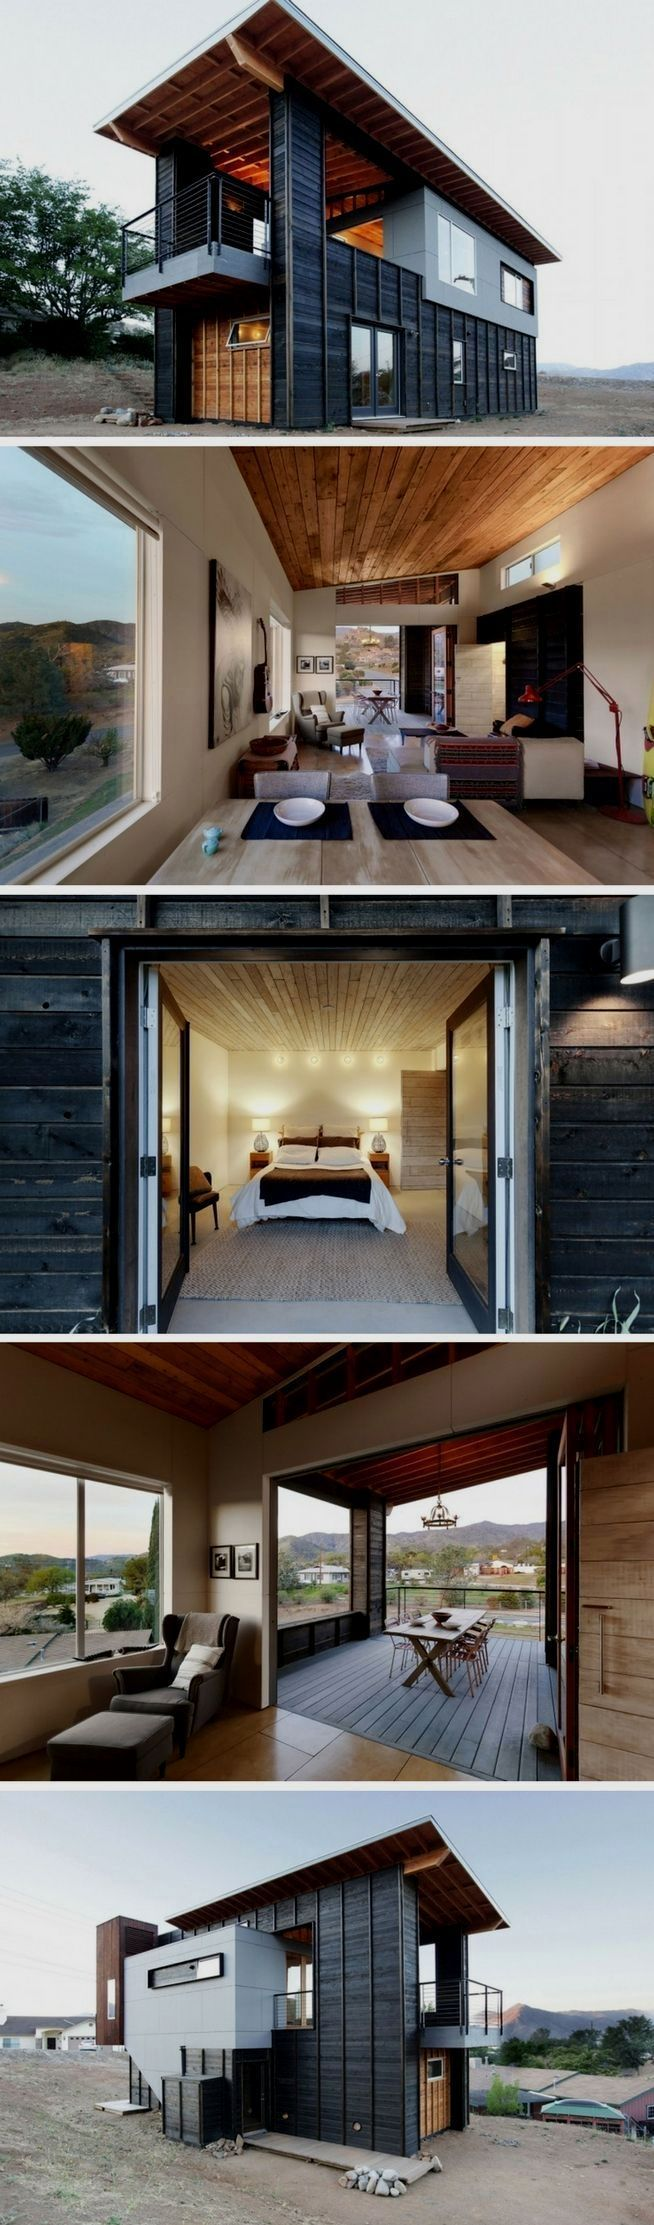 Photo of exquisite Shipping Container Homes Von $ 24k. Exterior #Desing #Recycle #Design …